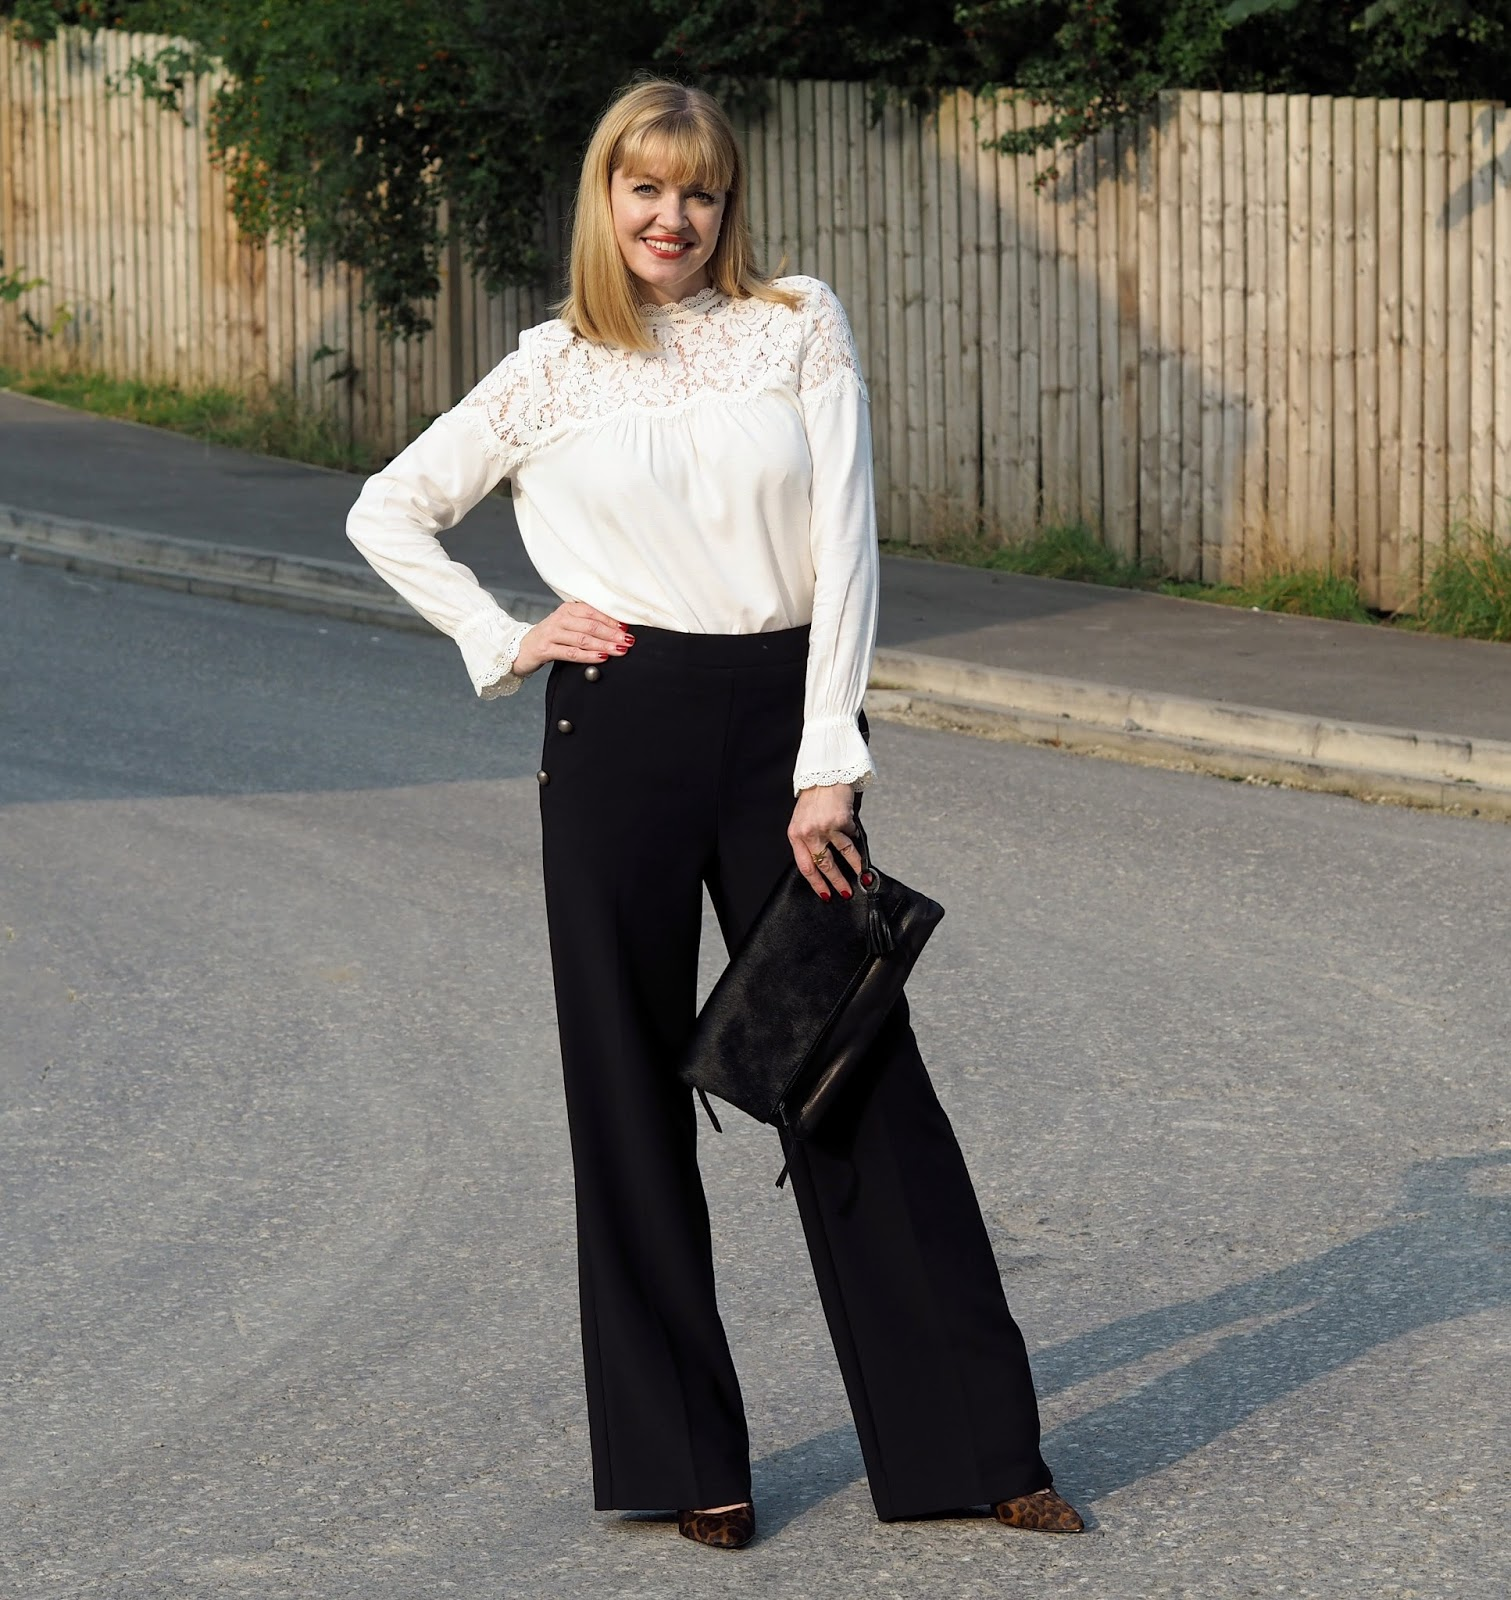 M&S wide legged trousers and romantic lace victoriana blouse with leopard print strappy shoes, over 40 style